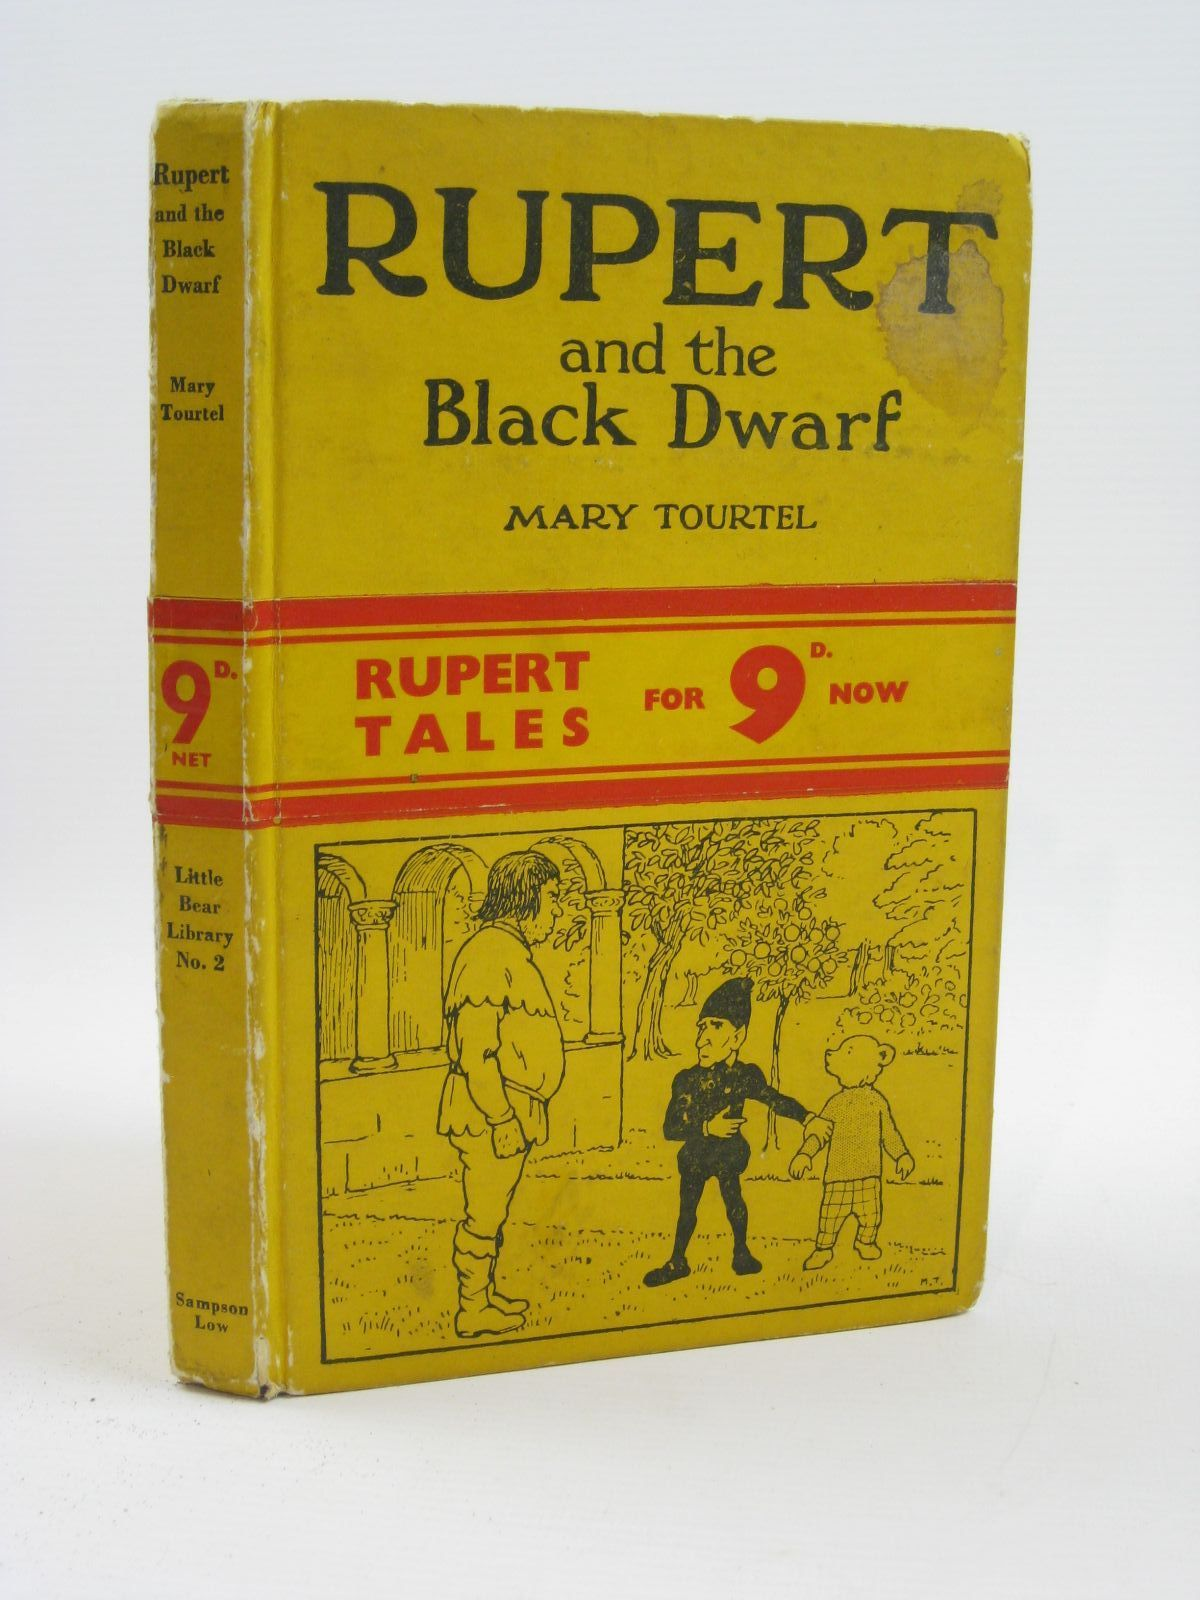 Photo of RUPERT AND THE BLACK DWARF - RUPERT LITTLE BEAR LIBRARY No. 2 written by Tourtel, Mary illustrated by Tourtel, Mary published by Sampson Low, Marston & Co. Ltd. (STOCK CODE: 1316463)  for sale by Stella & Rose's Books